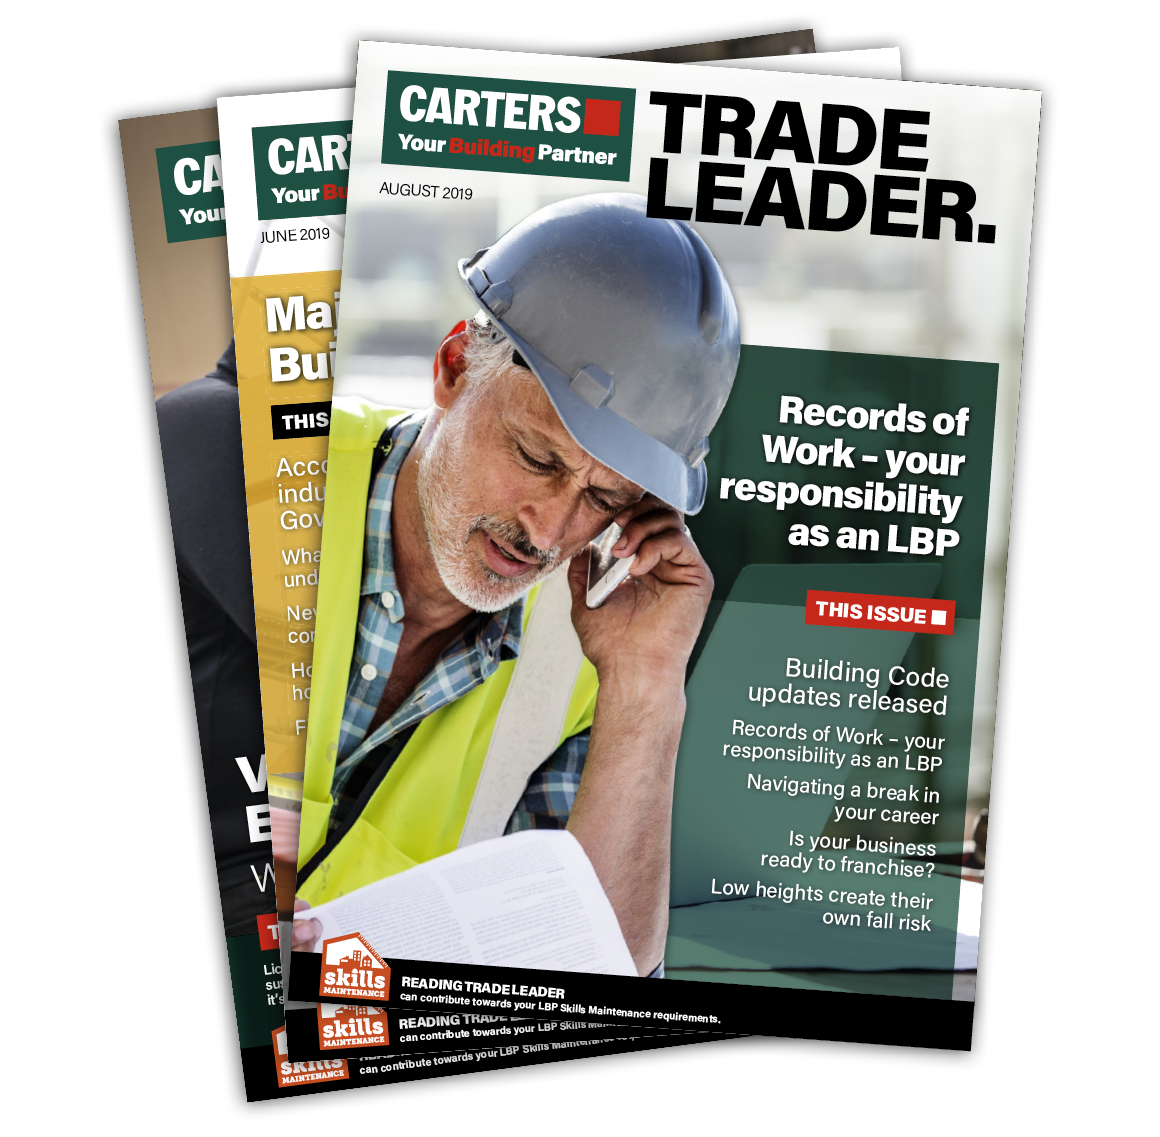 Trade Leader_Cover Image_All.png